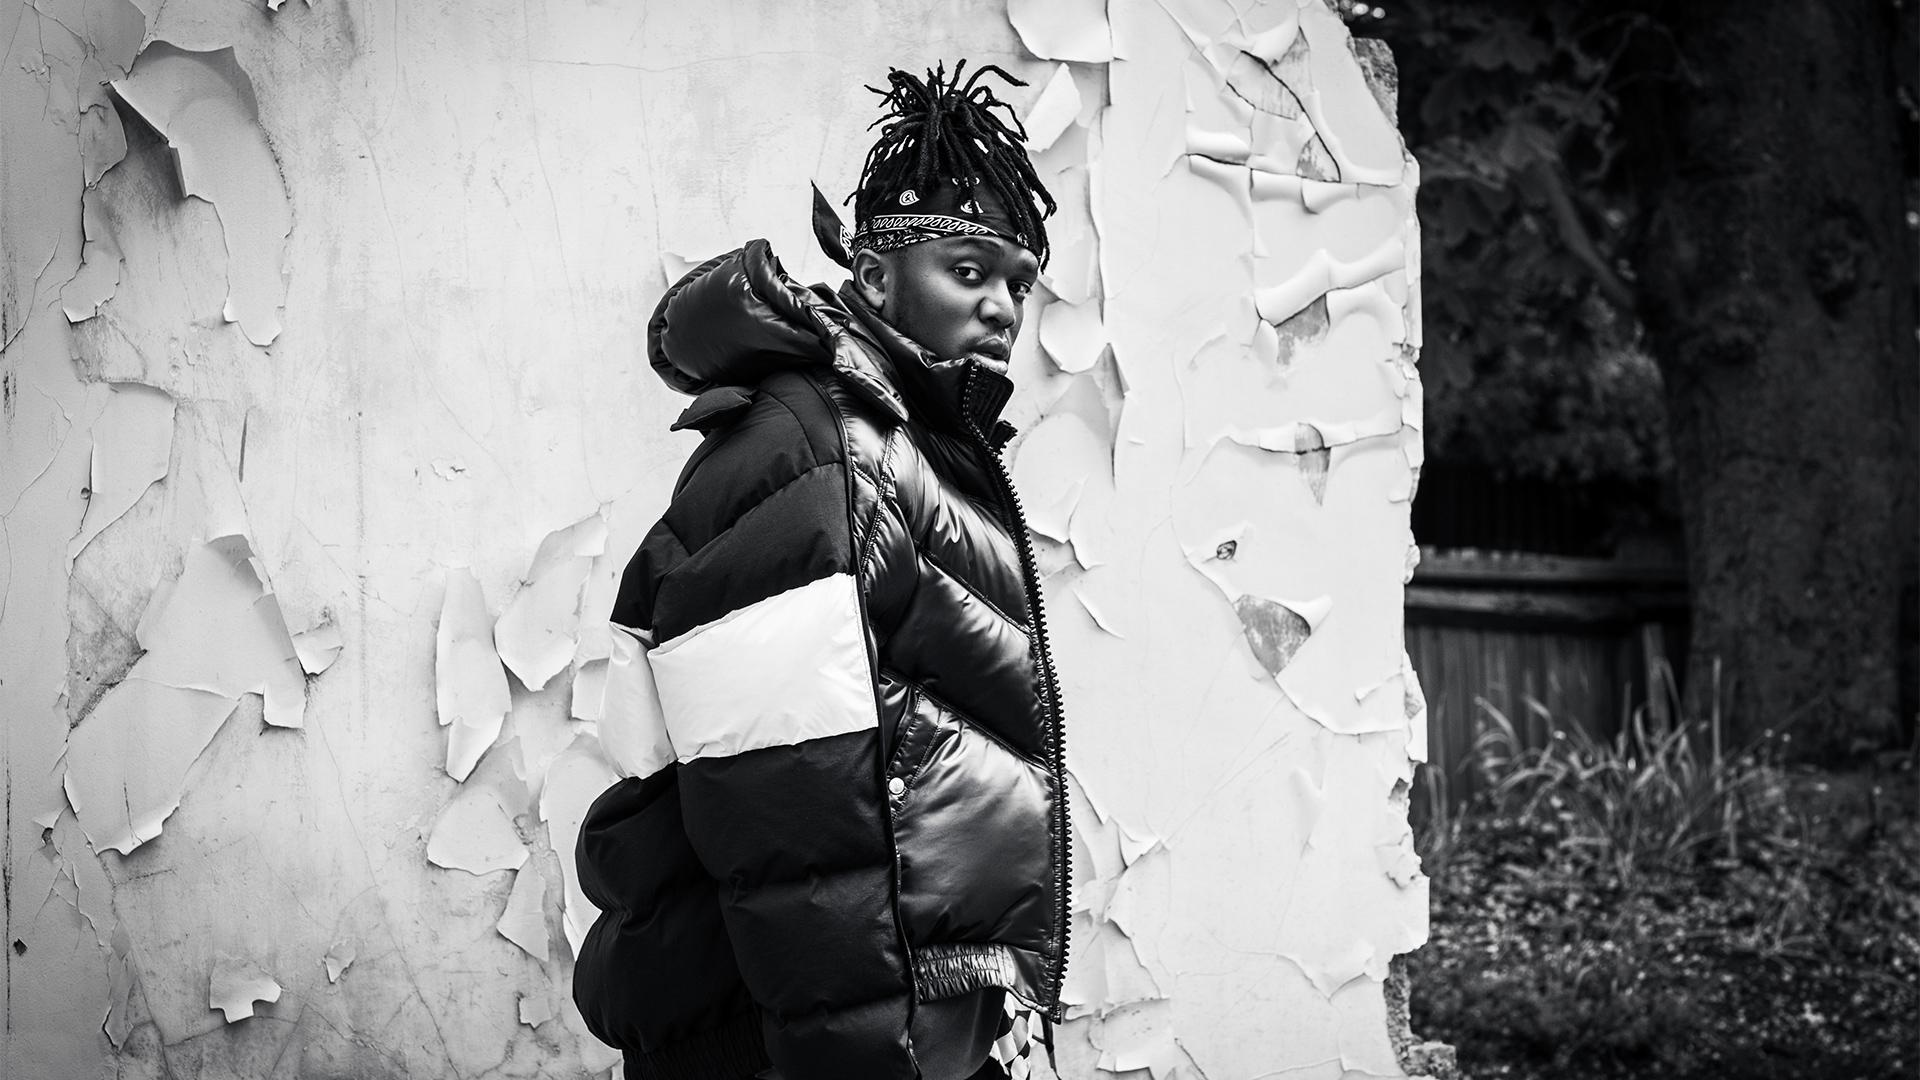 KSI photographed by Lee Malone